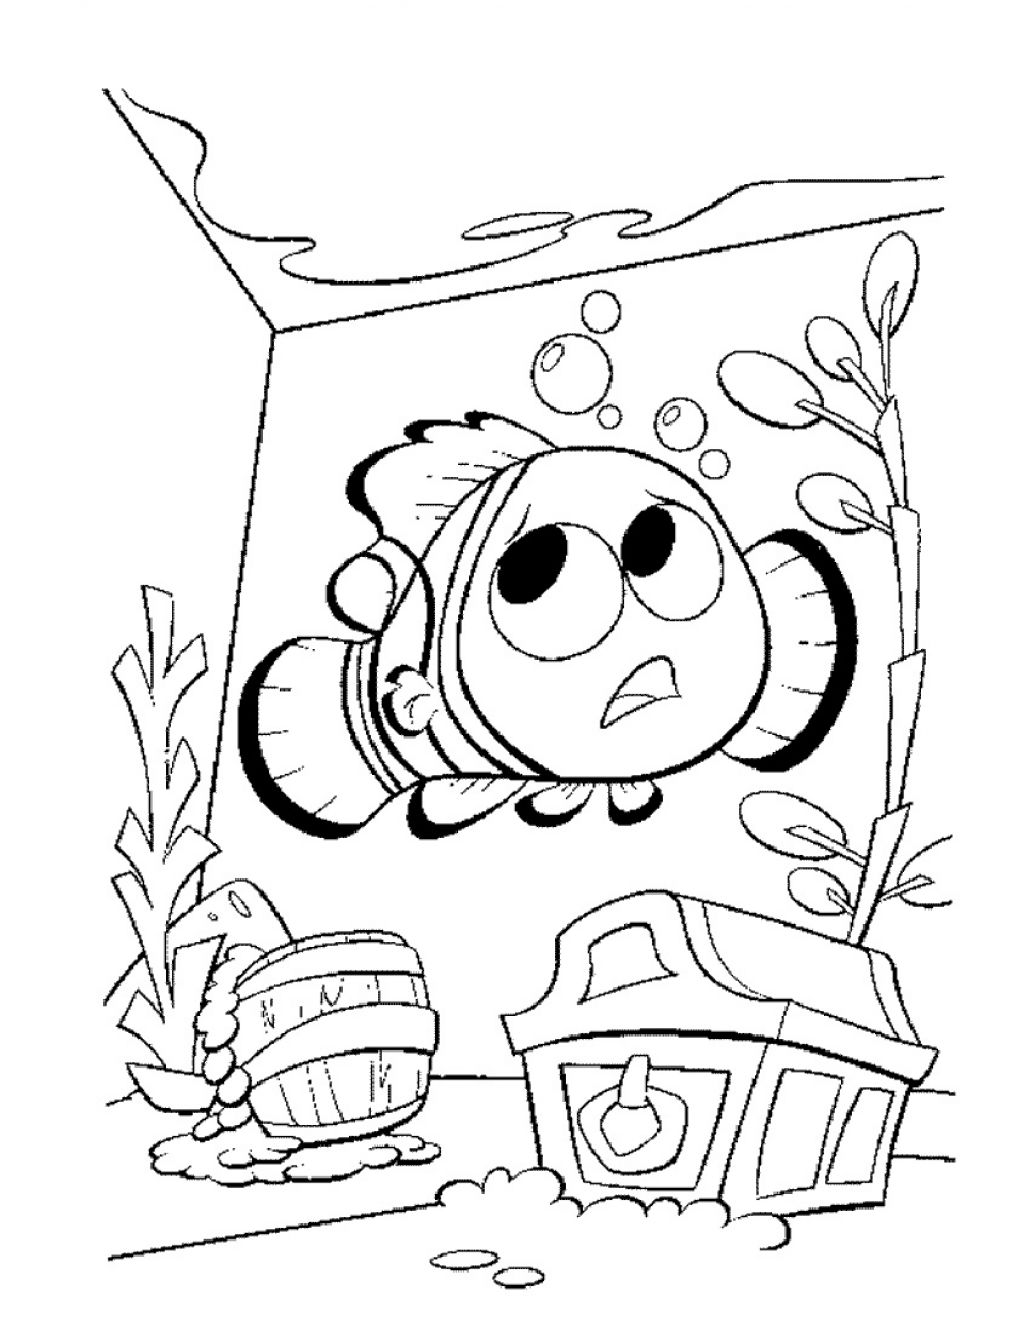 1024x1326 Epic Disney Cartoon Finding Nemo Coloring Pages